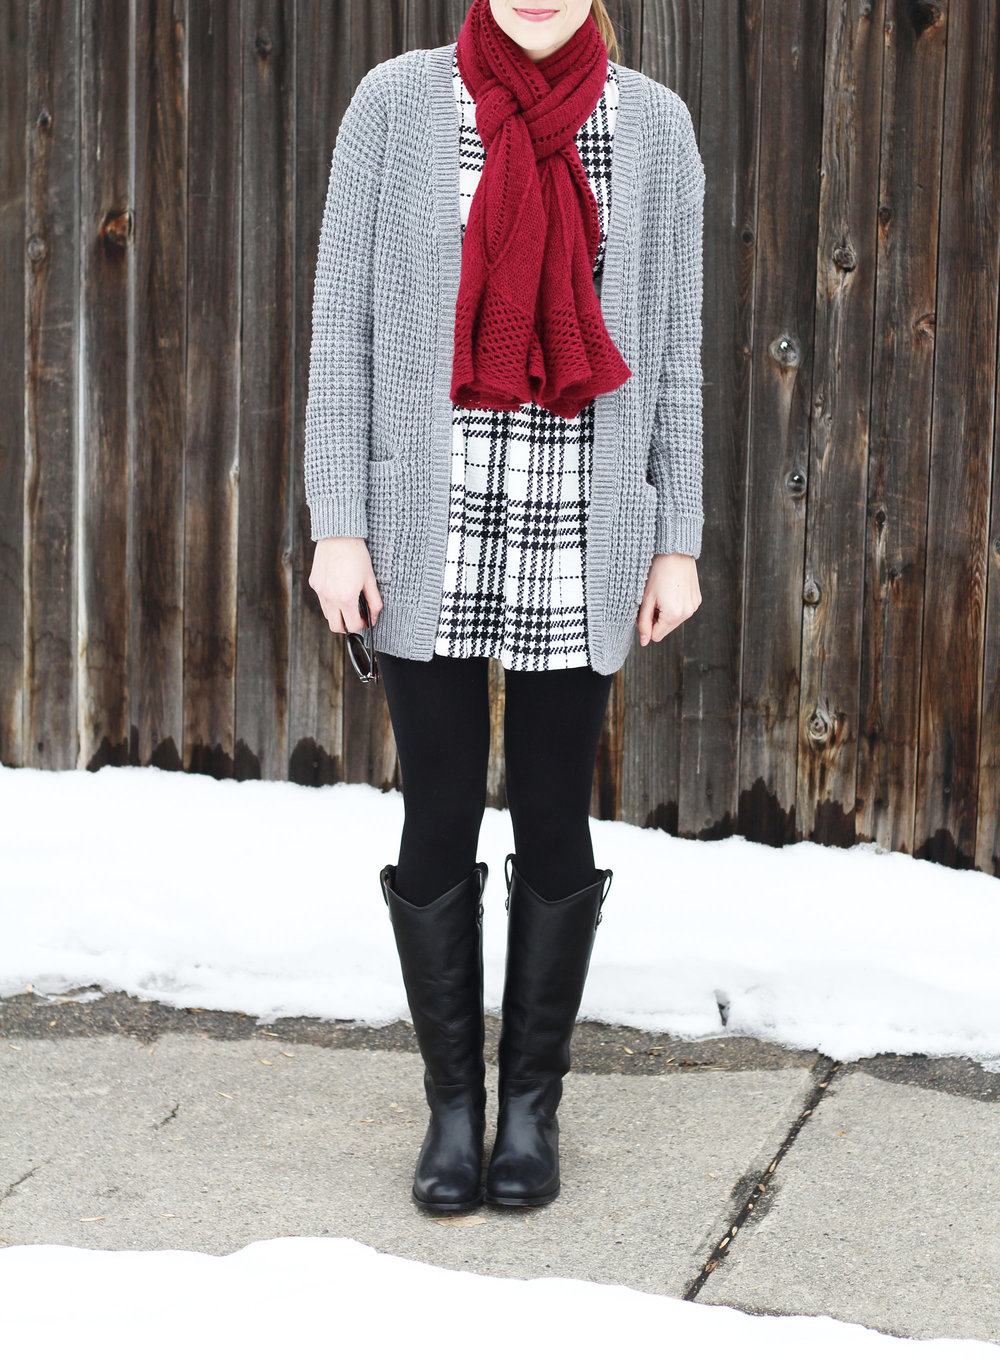 Frye Melissa Button boots outfit with plaid dress, grey cardigan, burgundy scarf — Cotton Cashmere Cat Hair